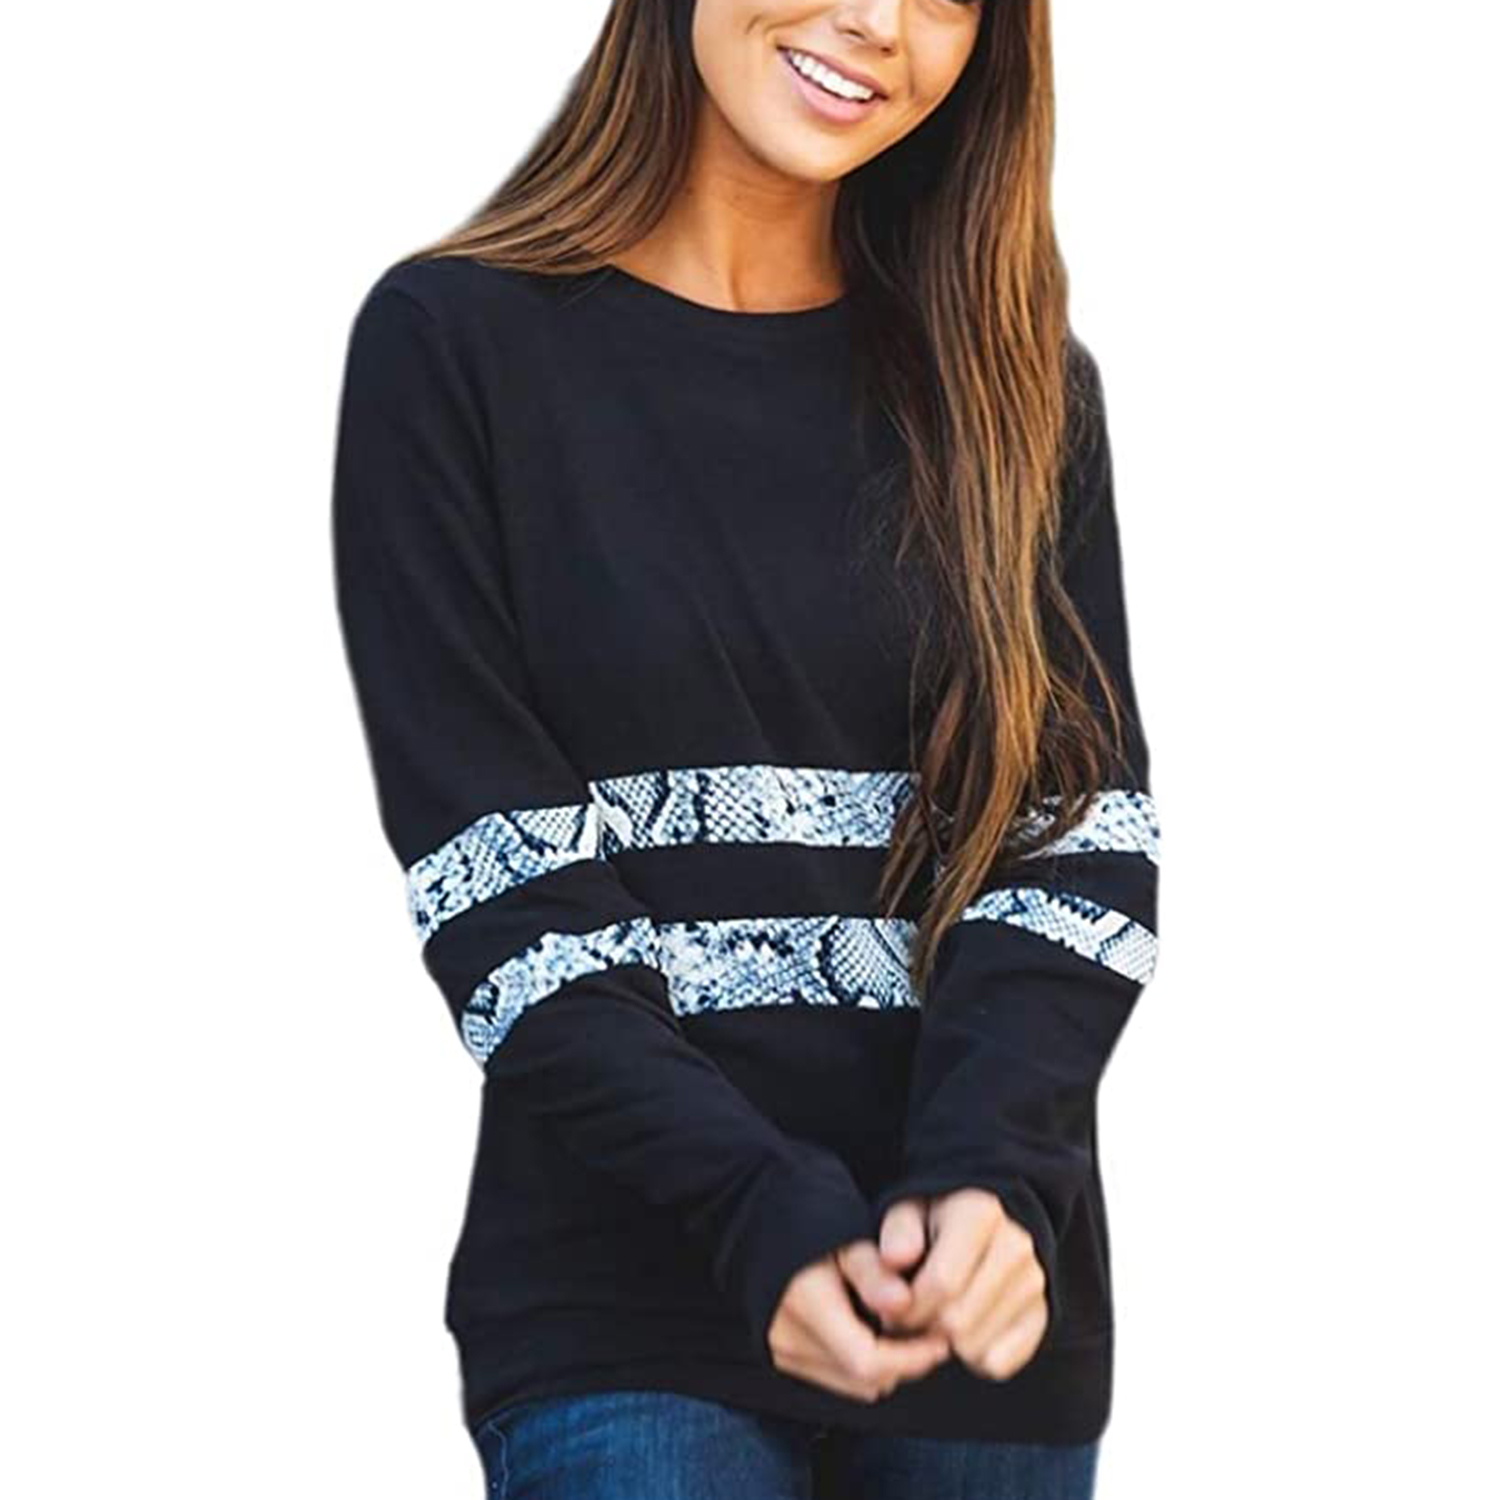 Tickled Teal Women's Long Sleeve Leopard Knit Casual Loose Sweater Outerwear